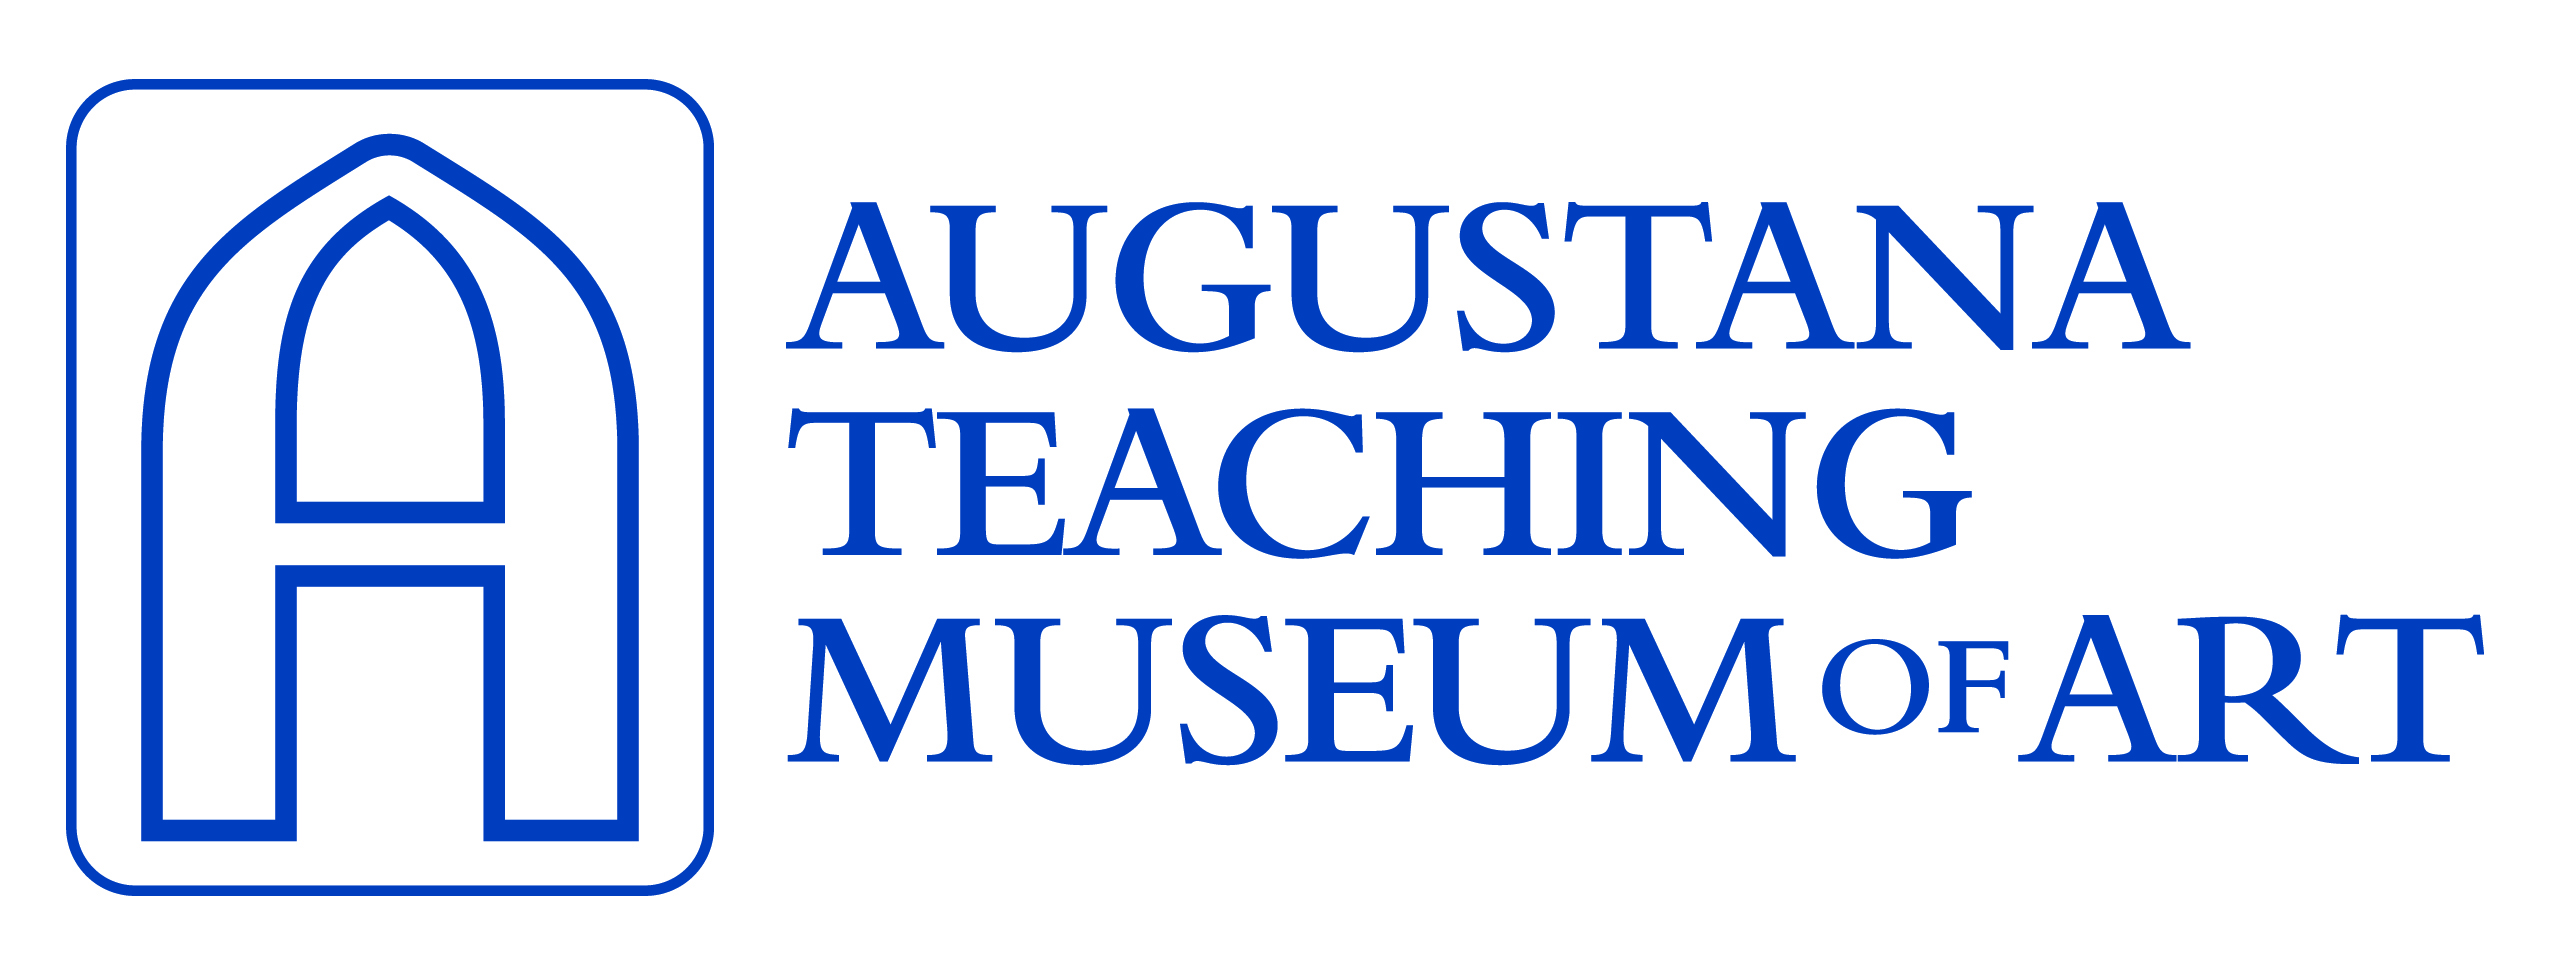 Augustana Teaching Museum of Art